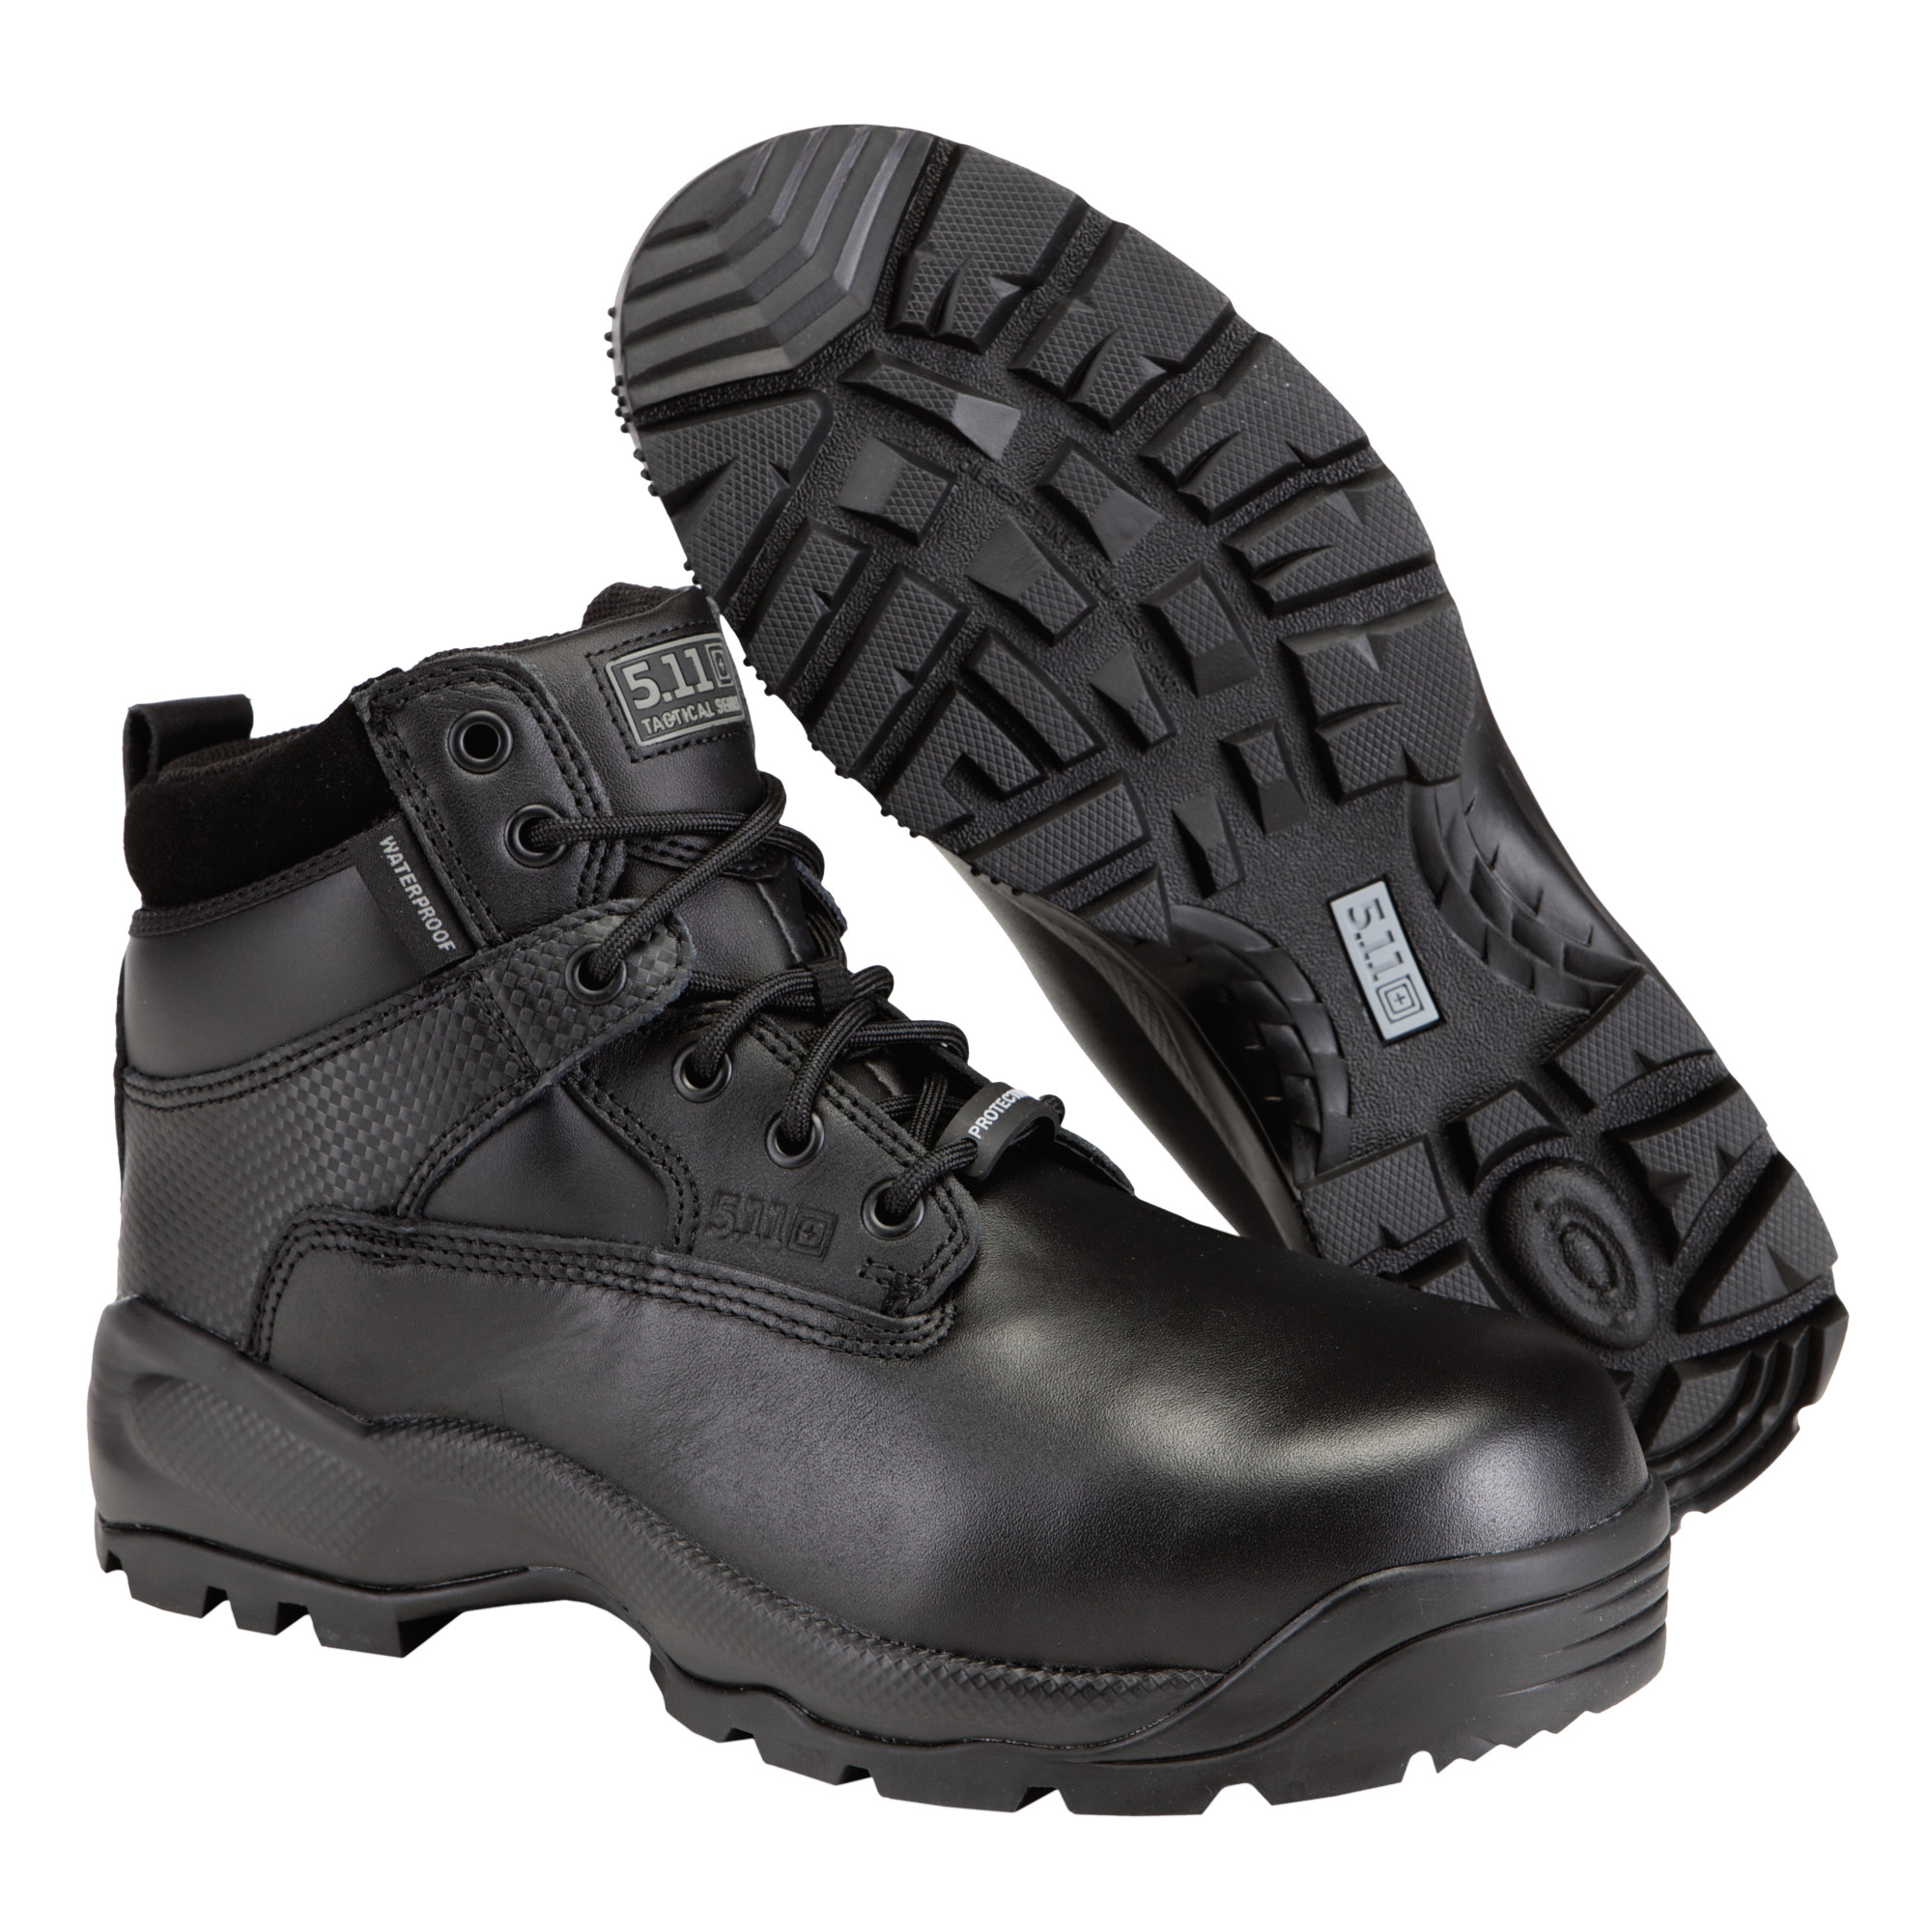 5.11 SHIELD 6 in SideZip SafetyToe Boot 12019